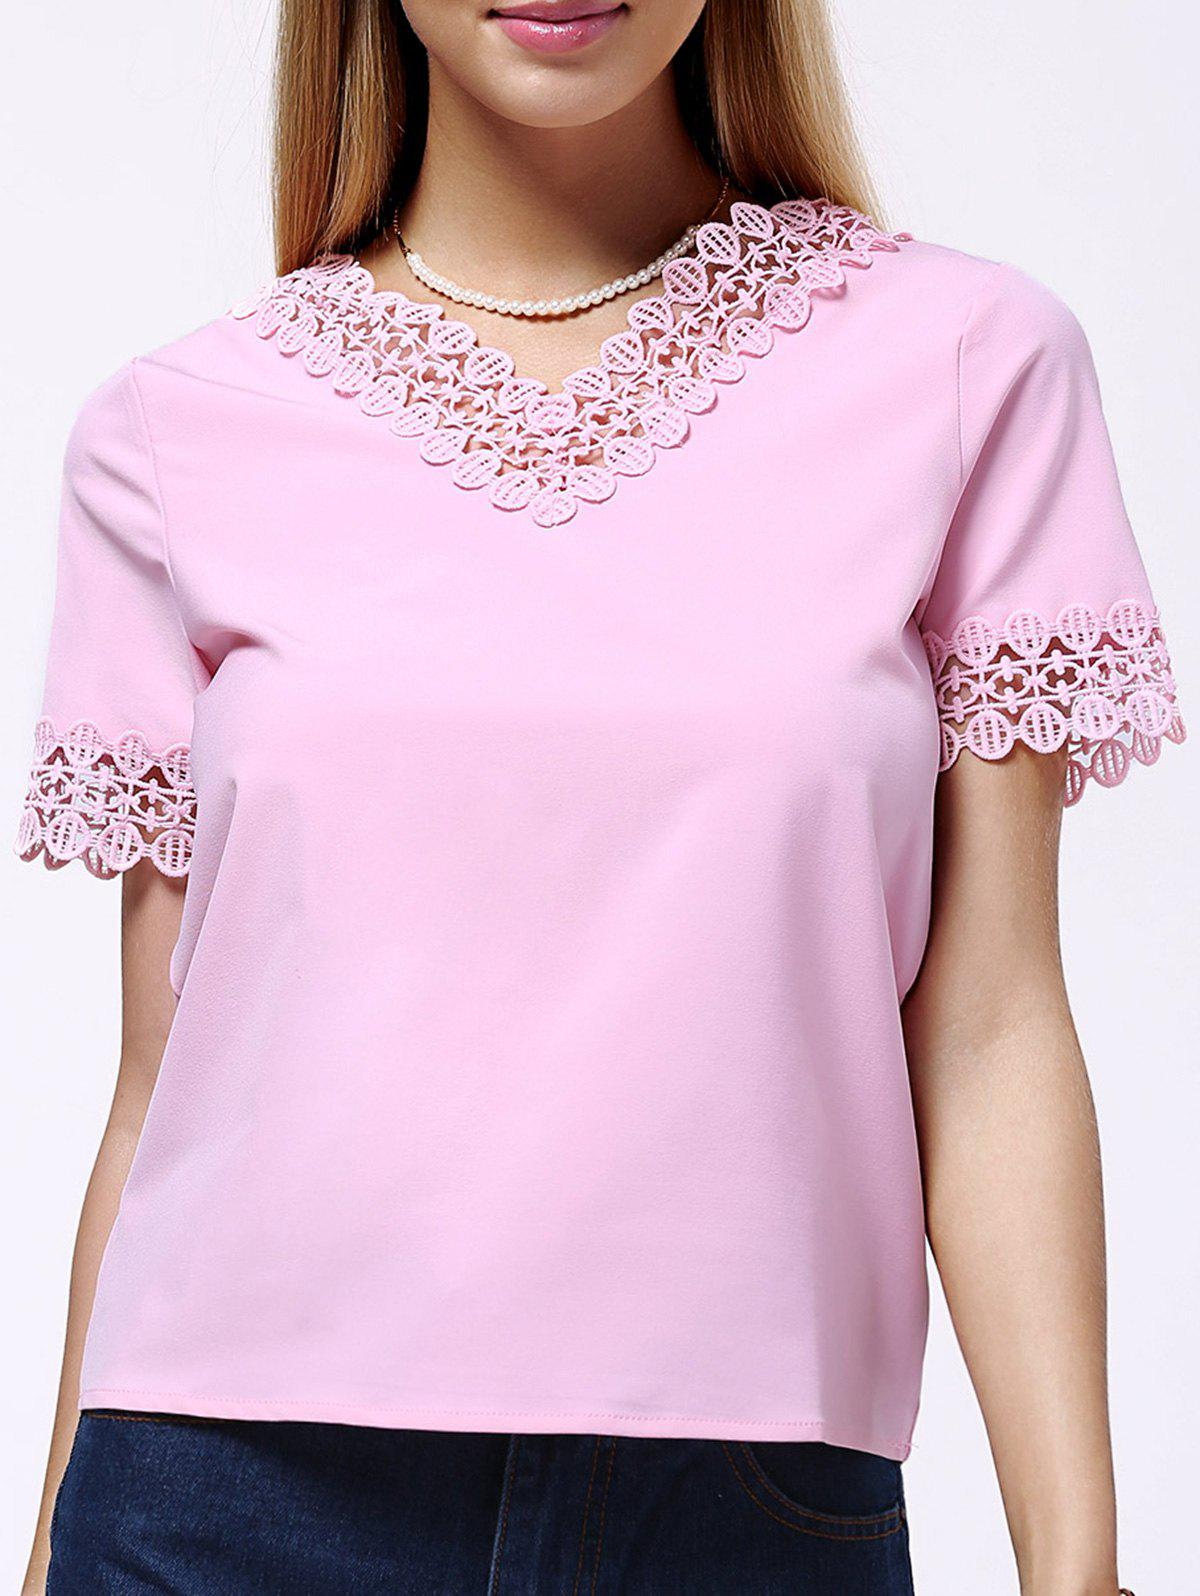 Sweet Women's Short Sleeve V Neck Pure Color Lace Spliced Blouse